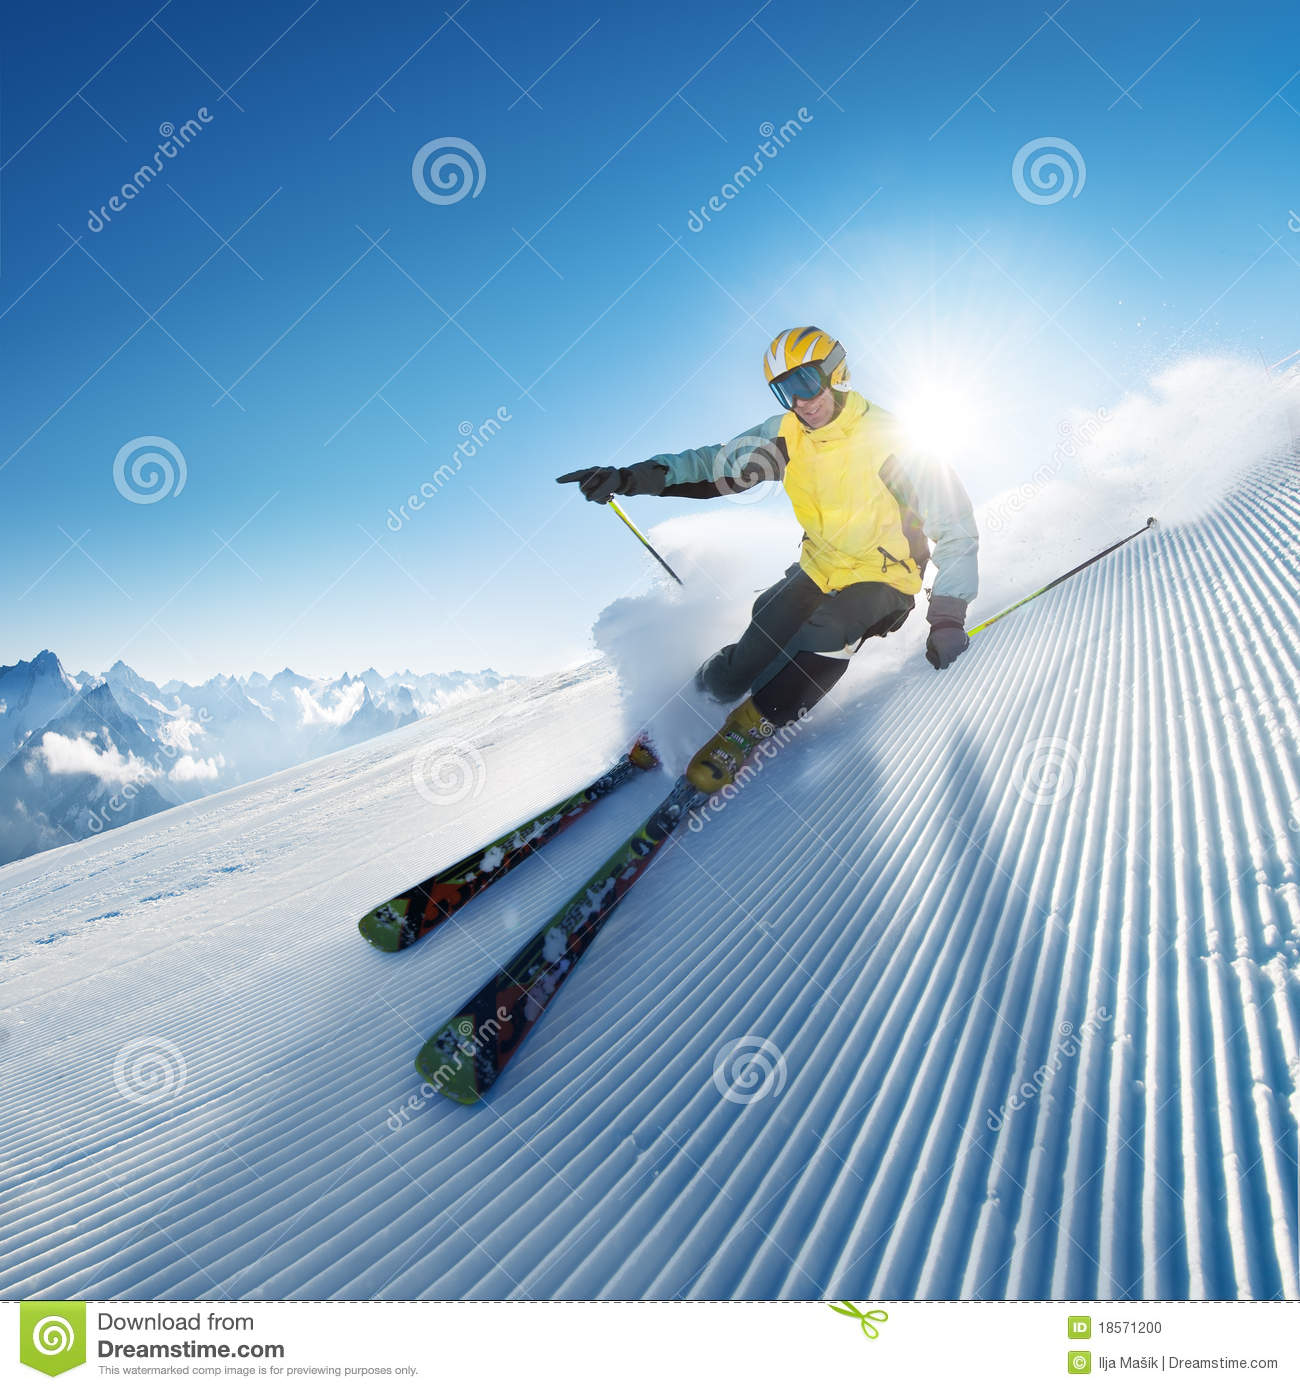 Skier in high mountain